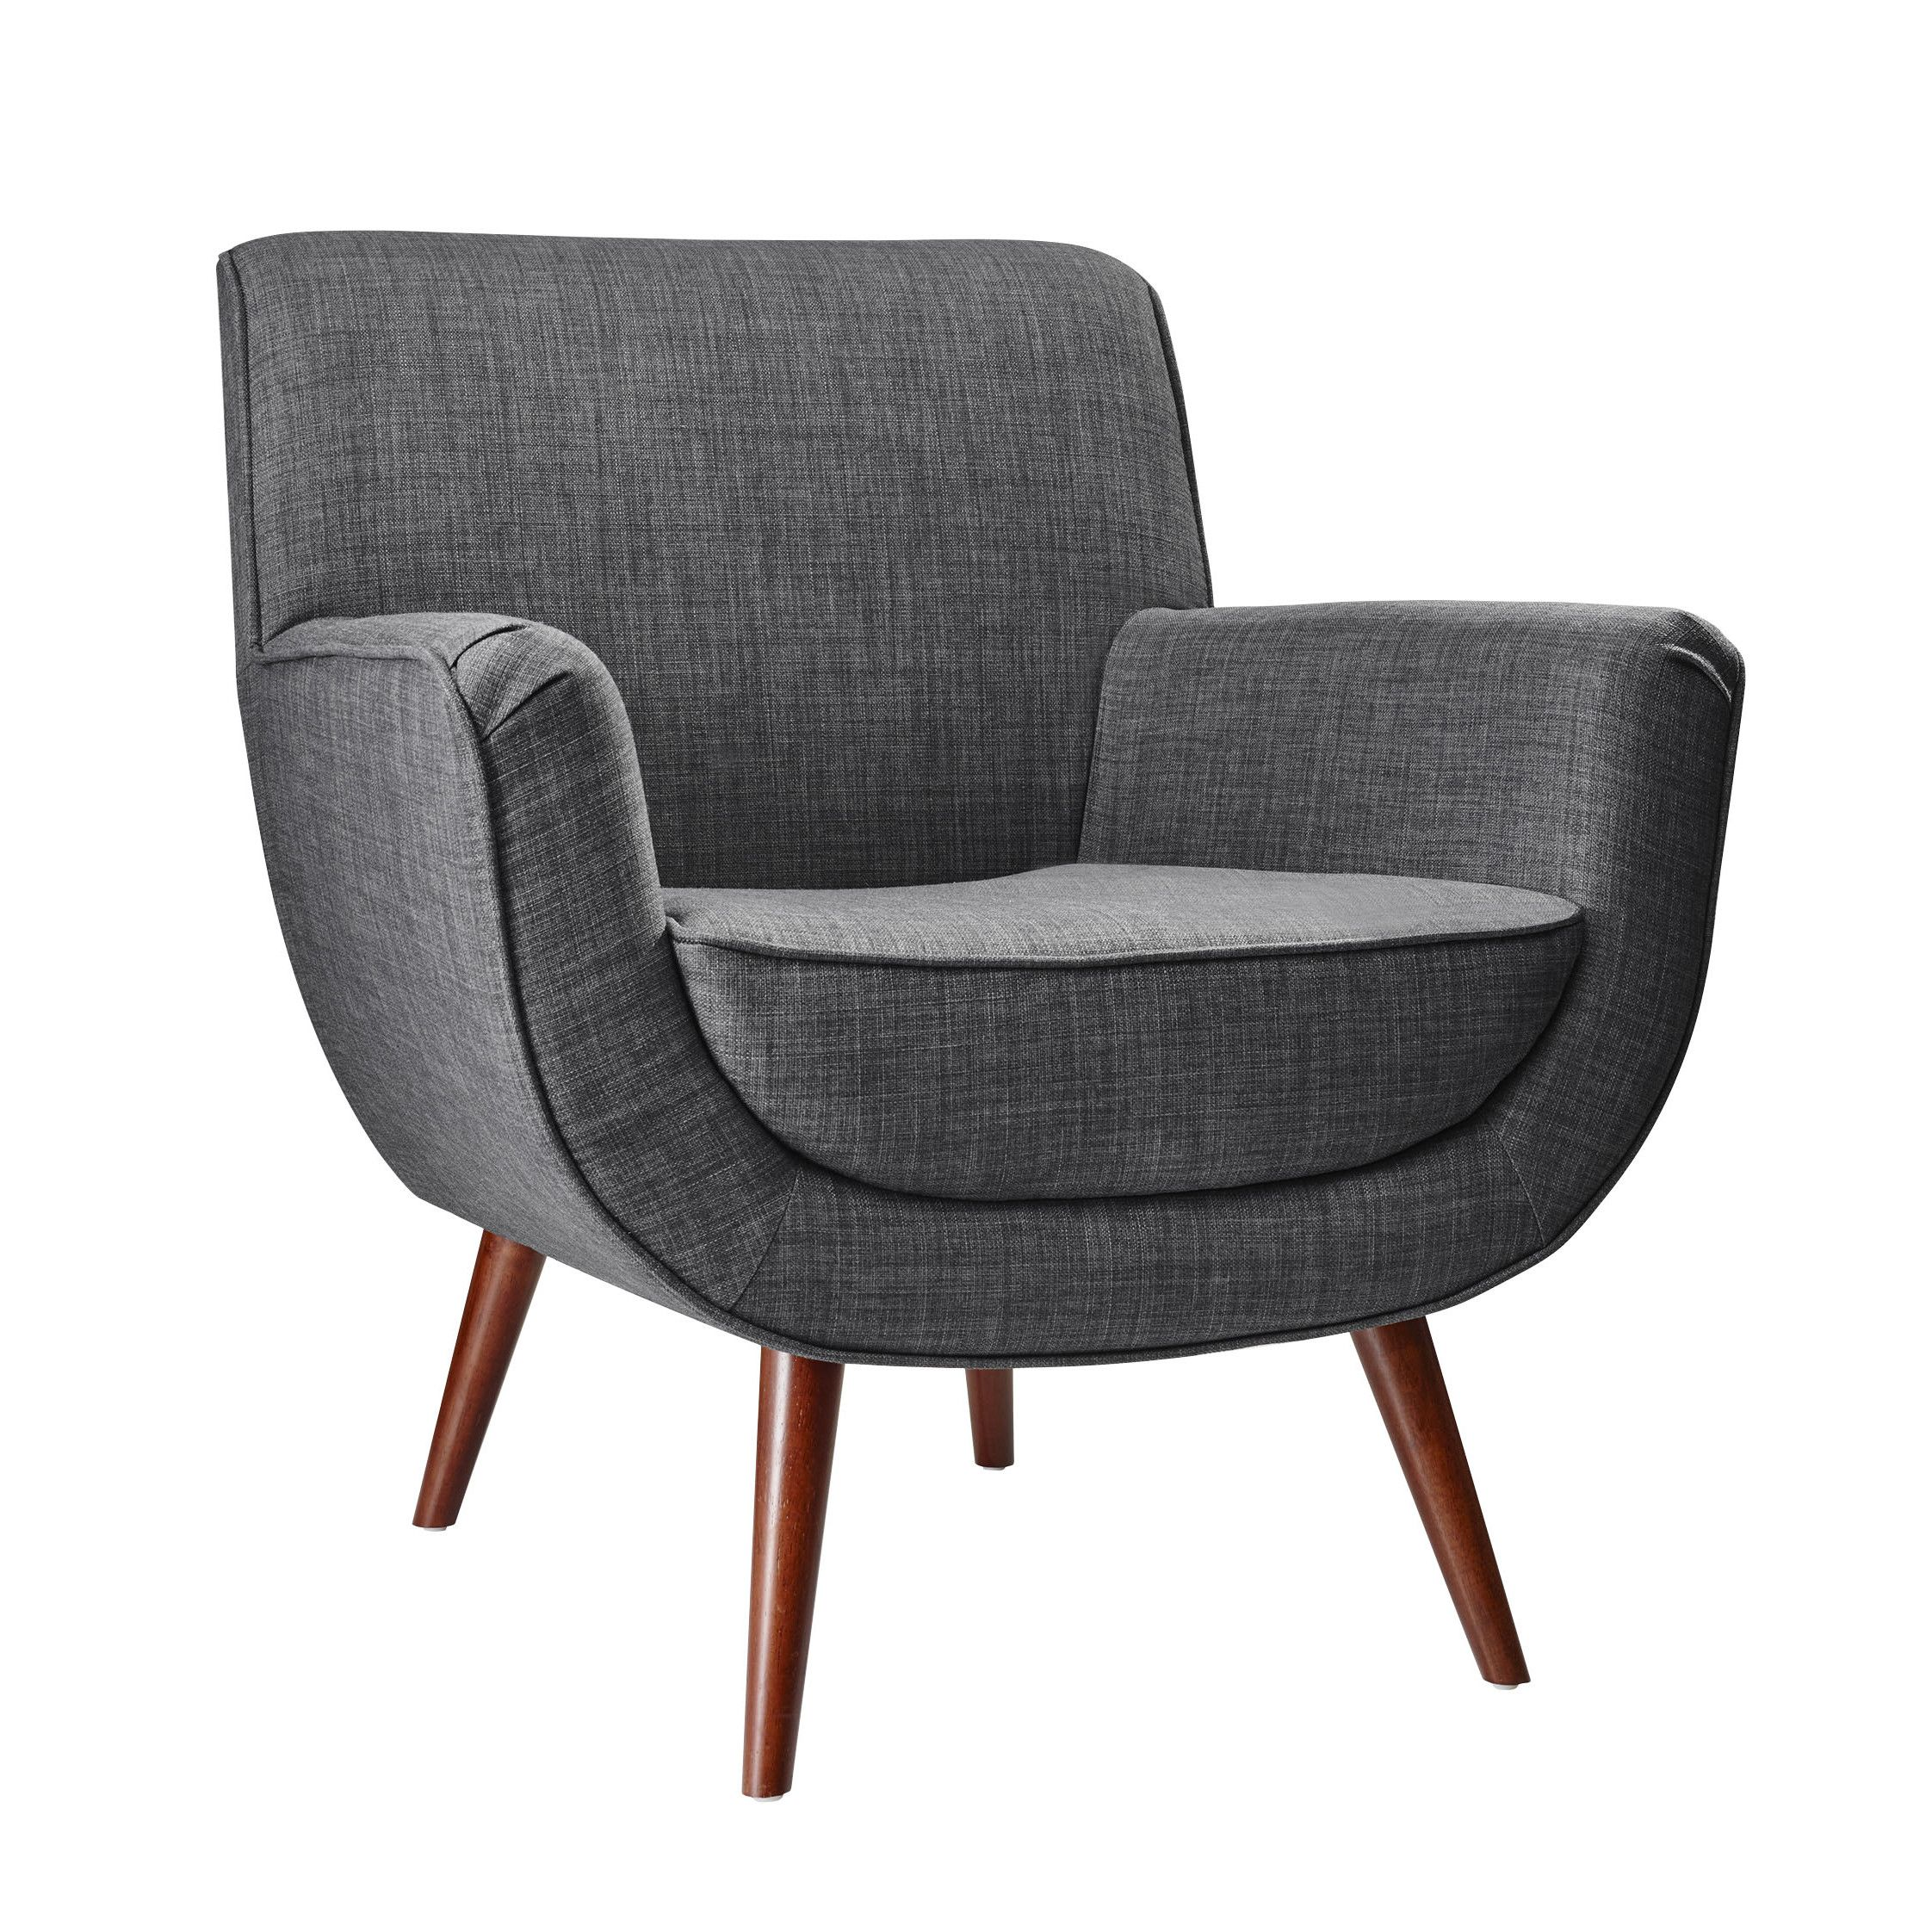 Adesso cormac chair cormac chair woven textured fabric upholstered chair rubberwood legs scooped bucket shaped plush seat measurements w x d x h seat